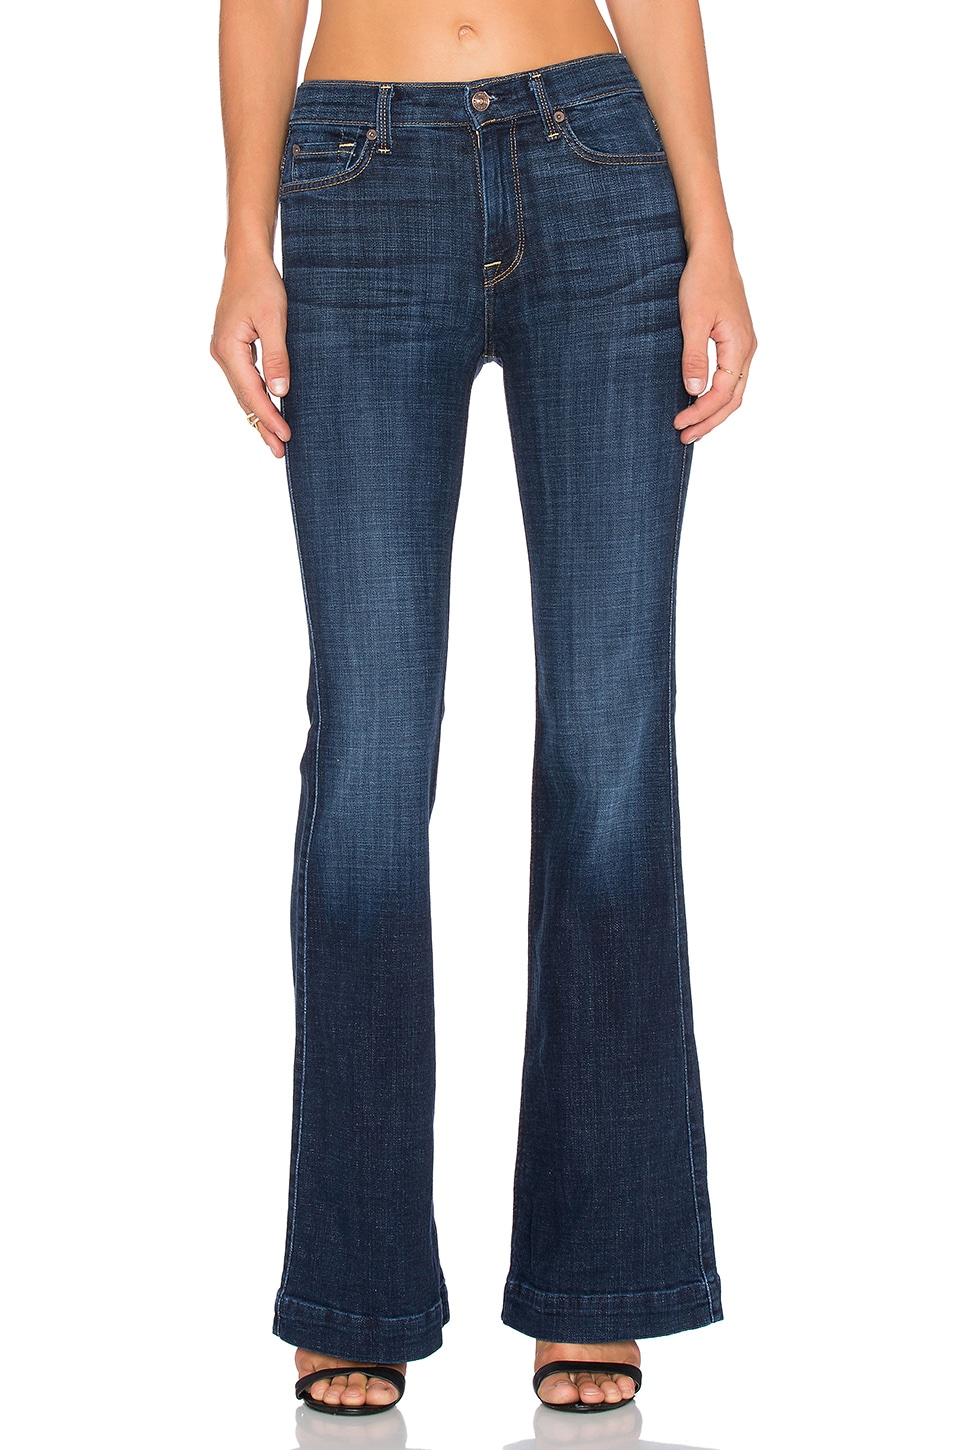 7 For All Mankind JEAN FLARE GINGER